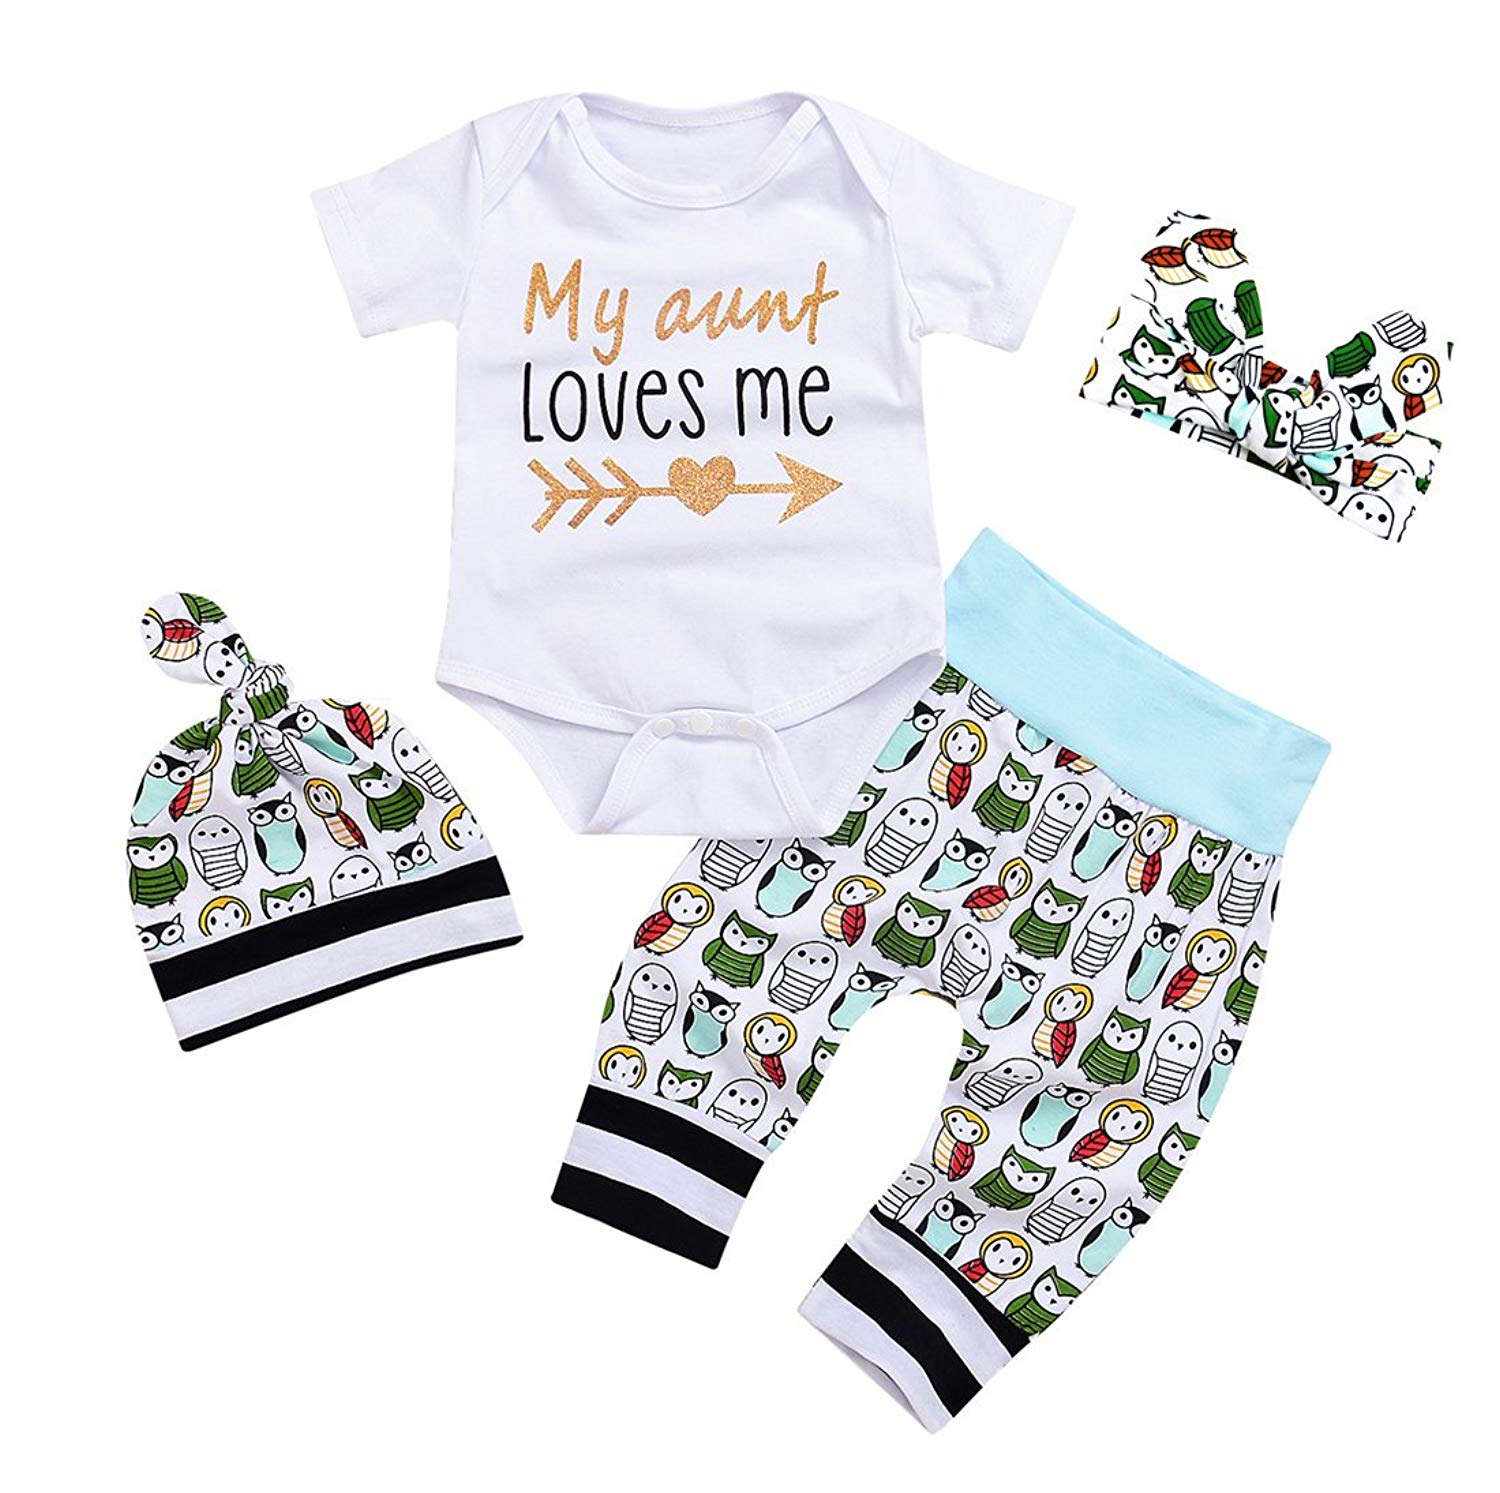 20b9b3fb6b3 Get Quotations · Newborn Baby Girls Owls Outfit Set 4pcs Unisex Baby Clothes  My Aunt Loves Me